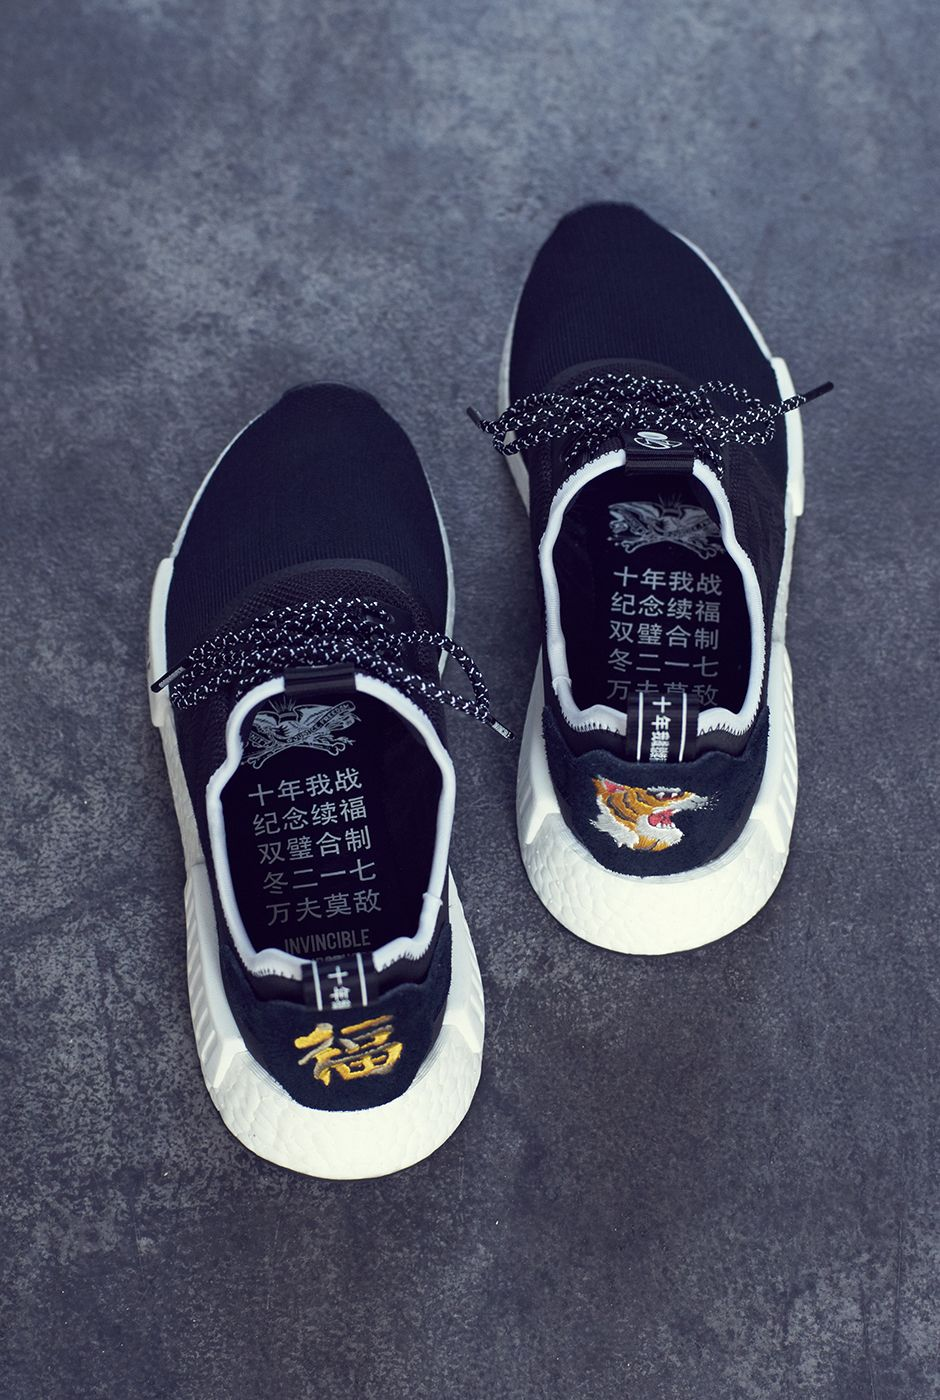 052f3f63c1672 Invincible NEIGHBORHOOD adidas NMD R1 CQ1775 Release Date ...